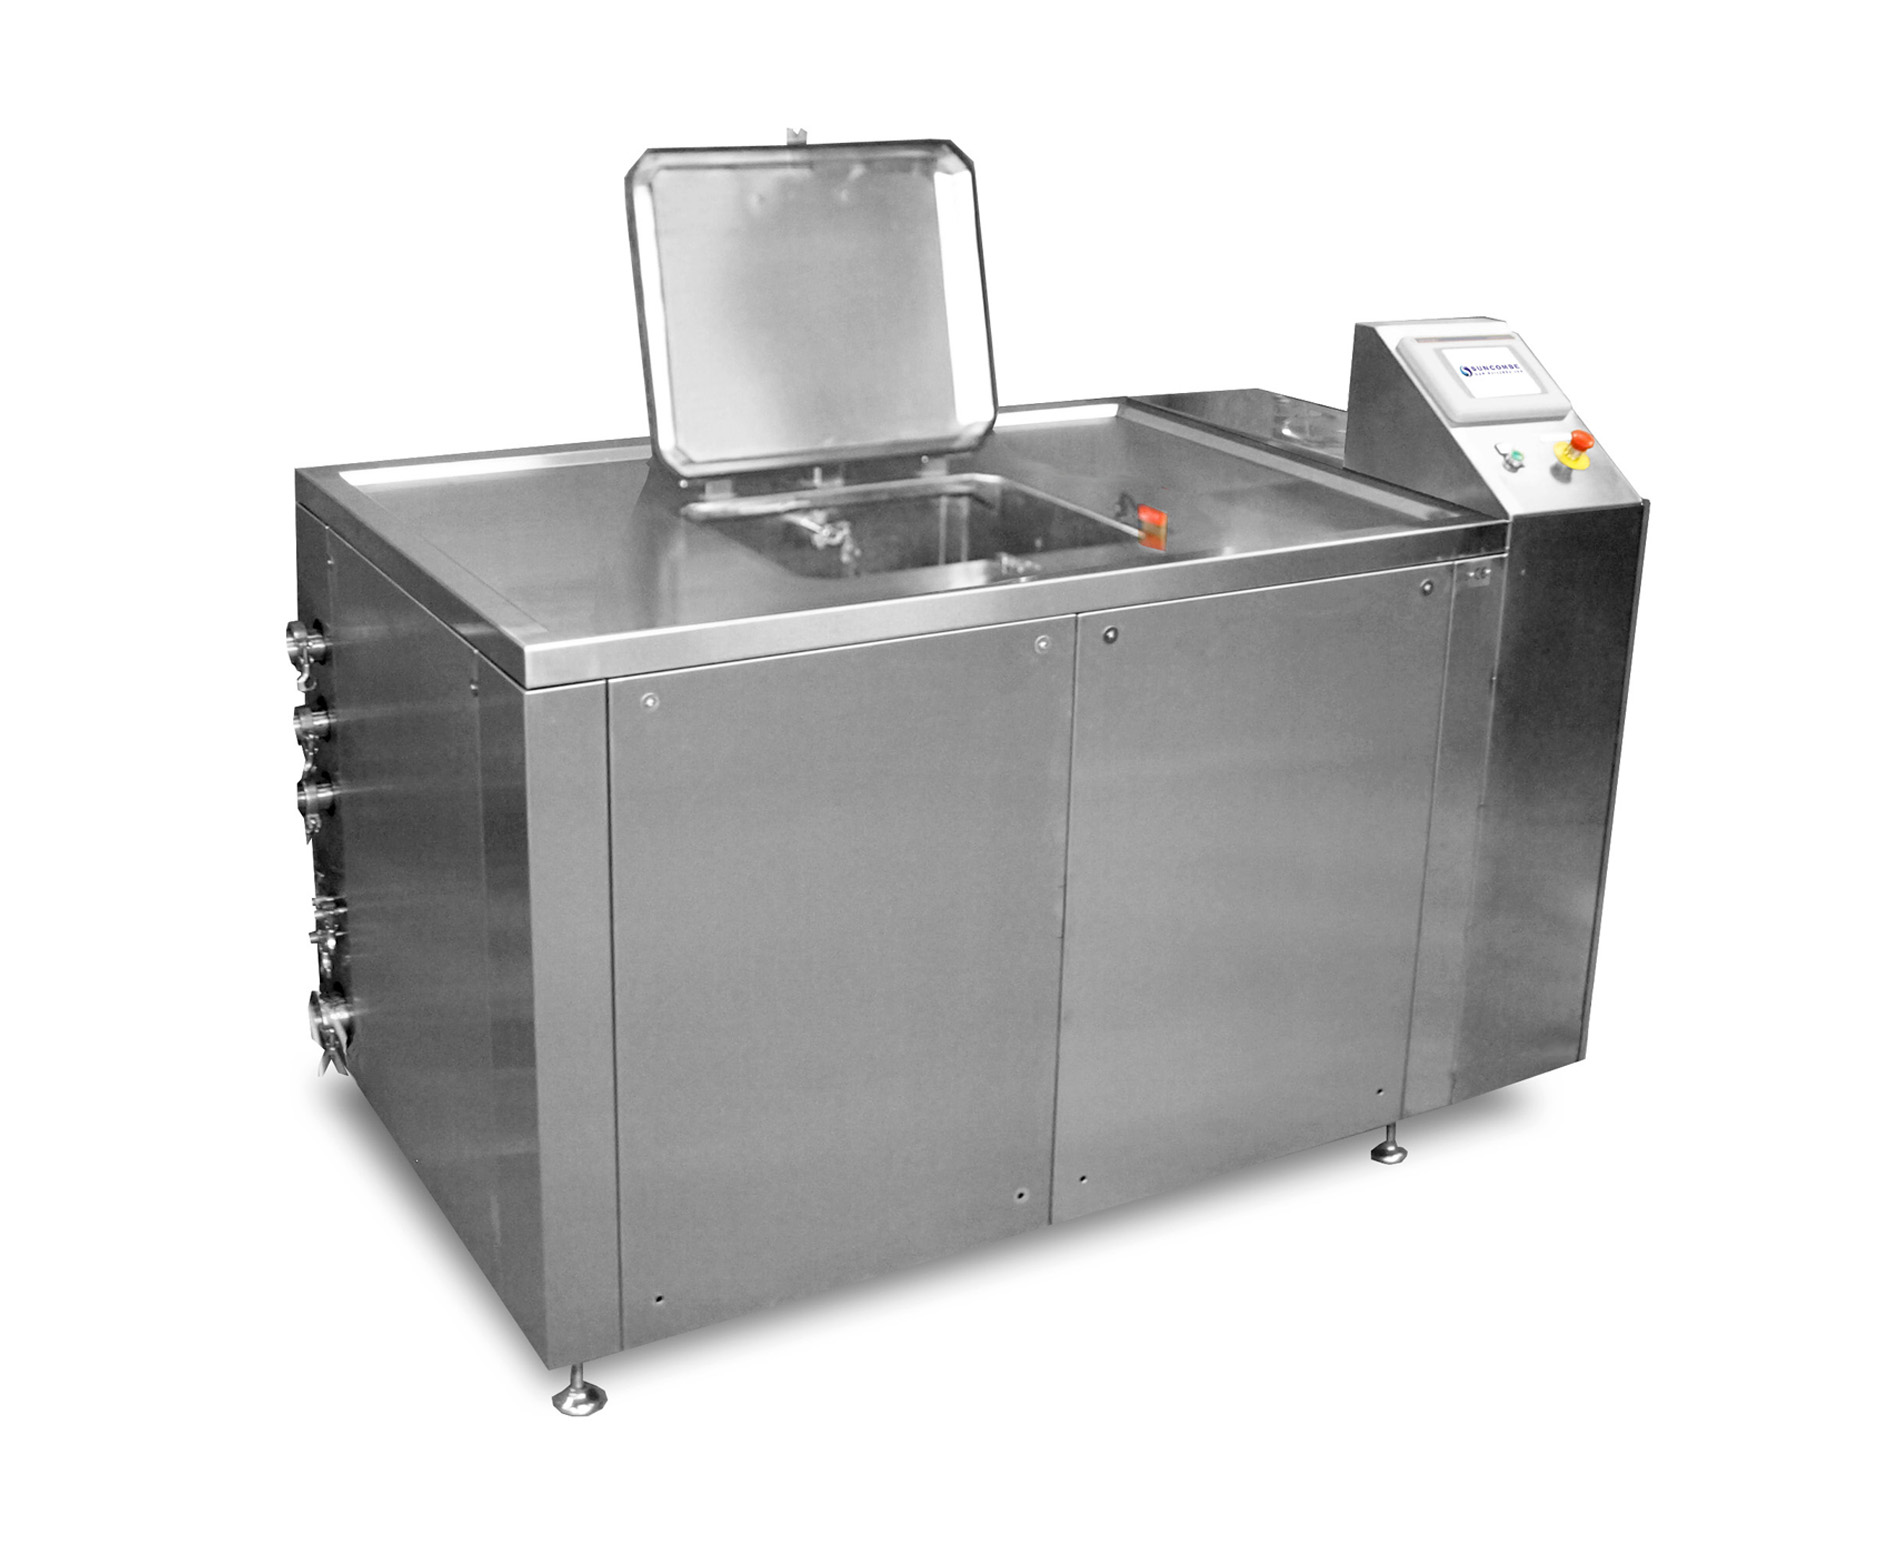 SONOKLEEN - Decontamination Facilities, Washing Systems